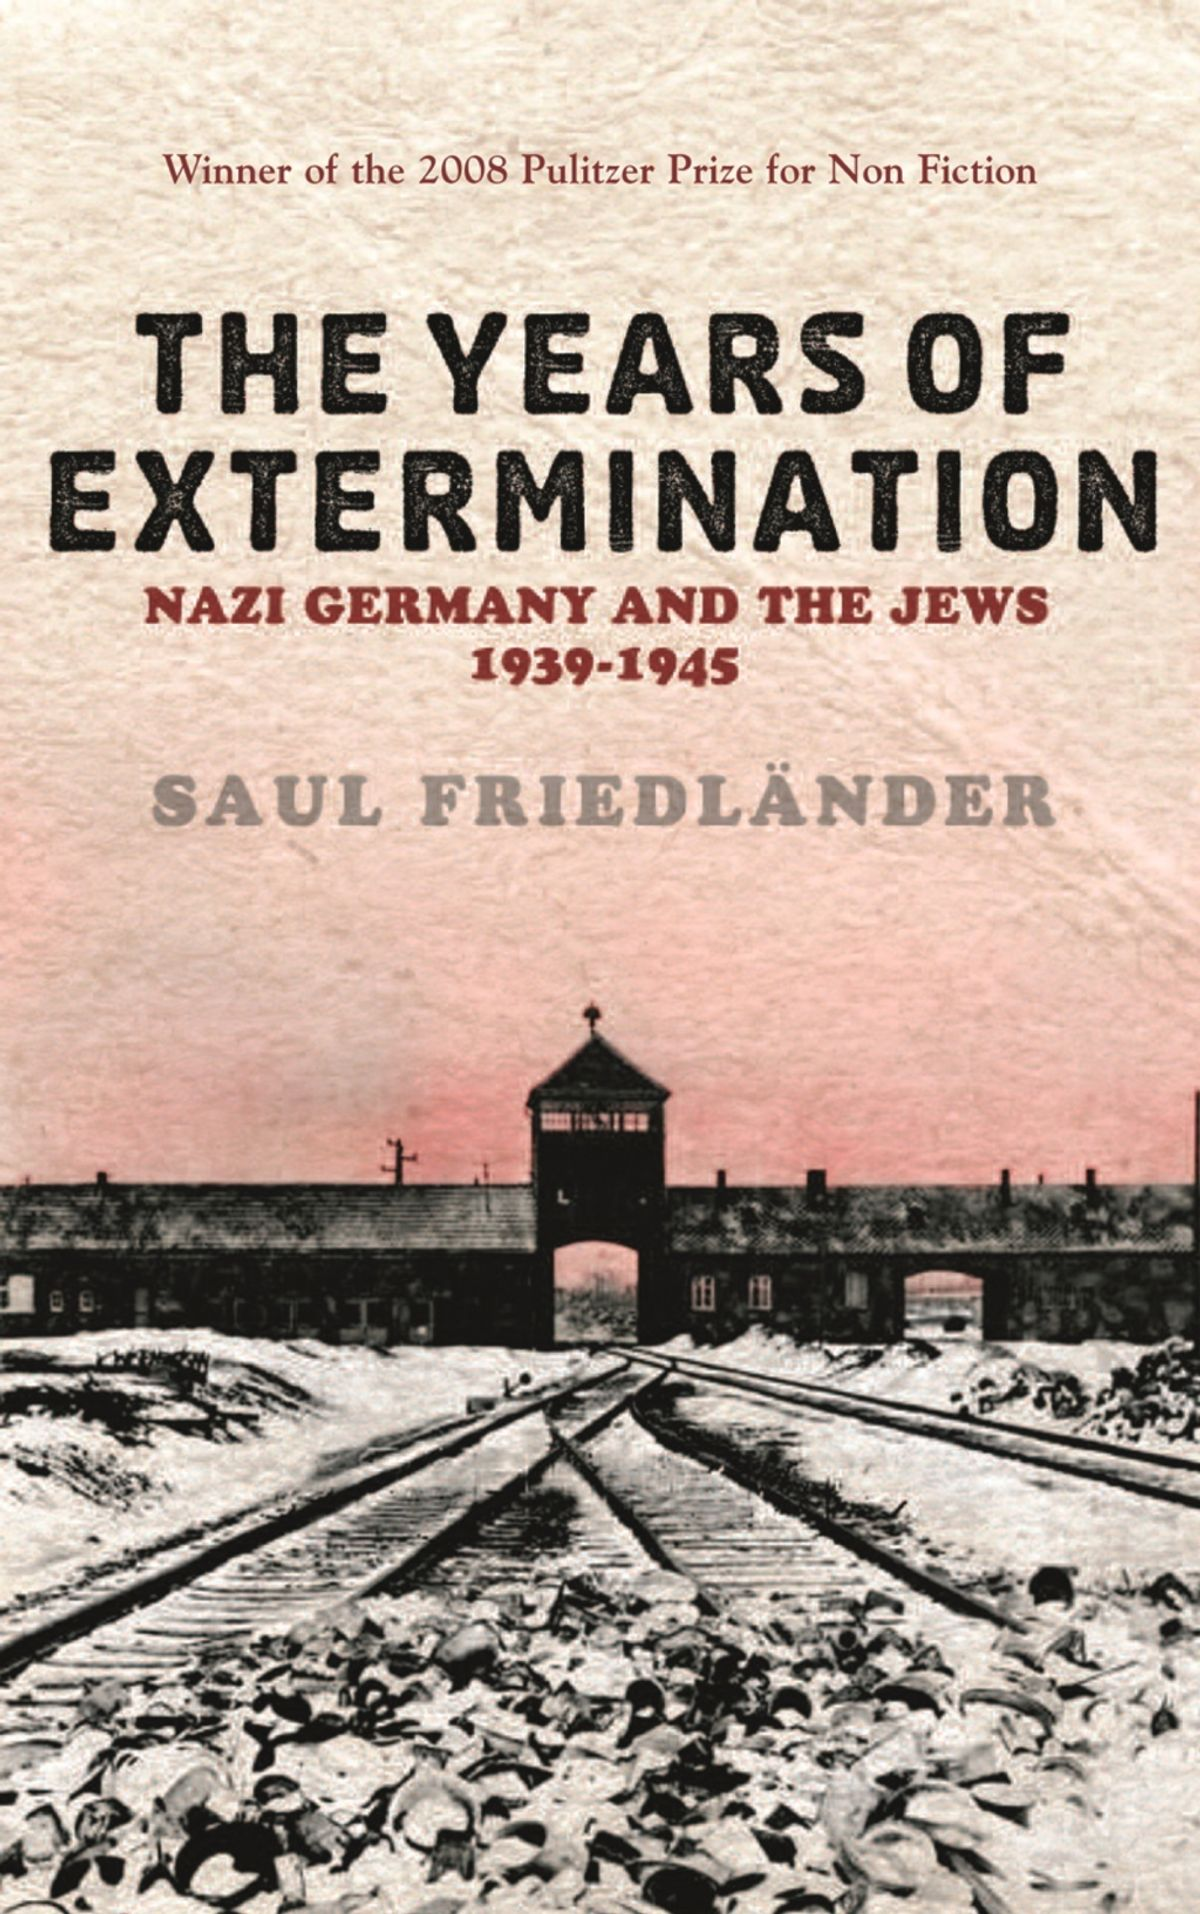 an introduction to the extermination of the jews Around half of the total people killed were jews, and the rest were a combination of gypsies, soviet prisoners of war, jehovah's witnesses, homosexuals, and/or disabled men, woman, and children (extermination camps encyclopedia.